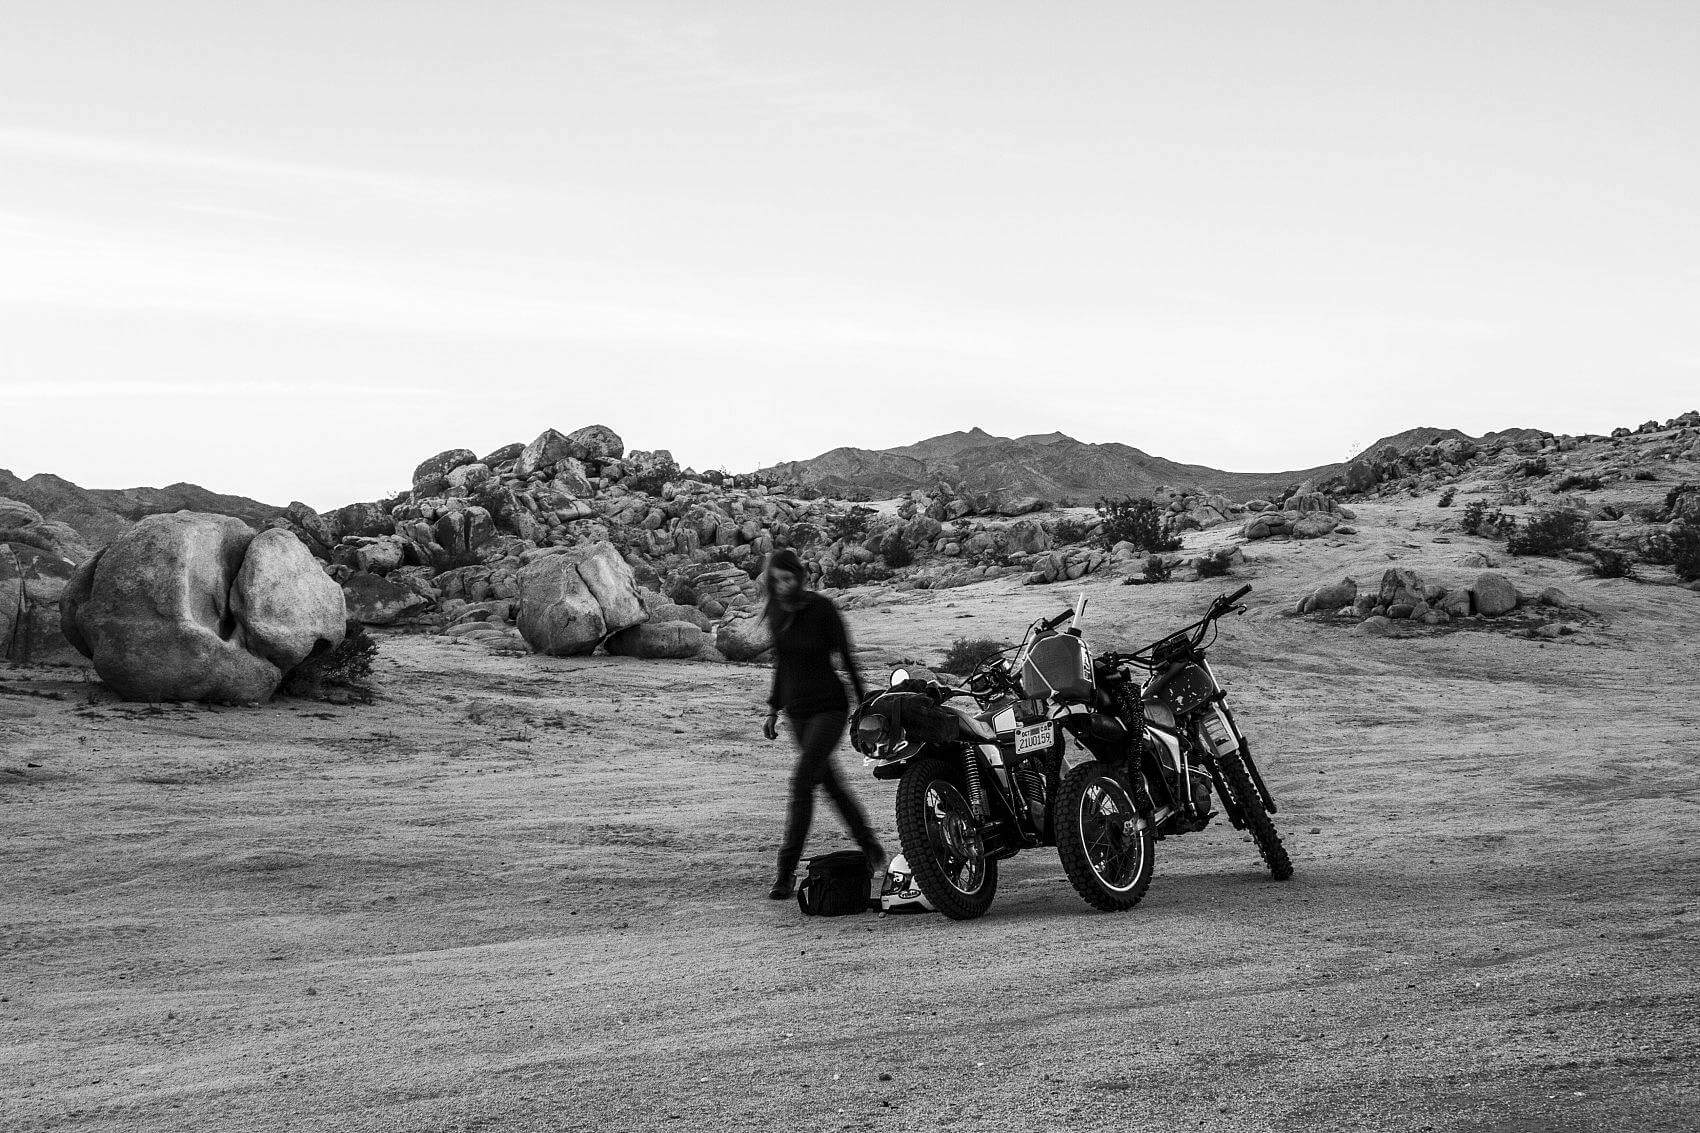 ali-beletic-horizon-parallel-2-motorcycles